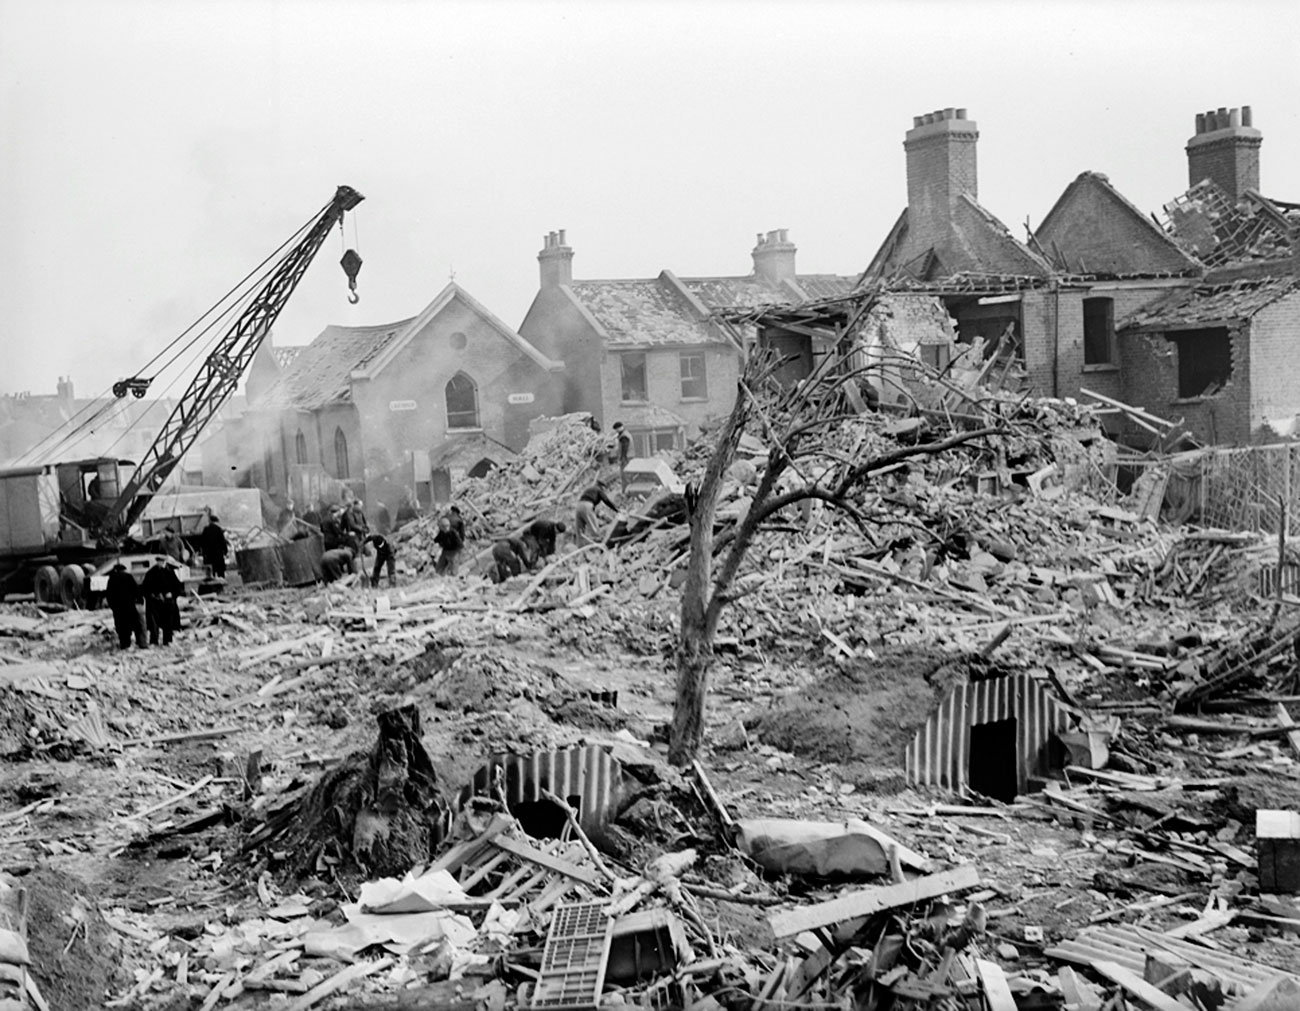 http://www.v2rocket.com/start/deployment/priory-rd-near-west-ham-stadium-jan-28-1945.jpg